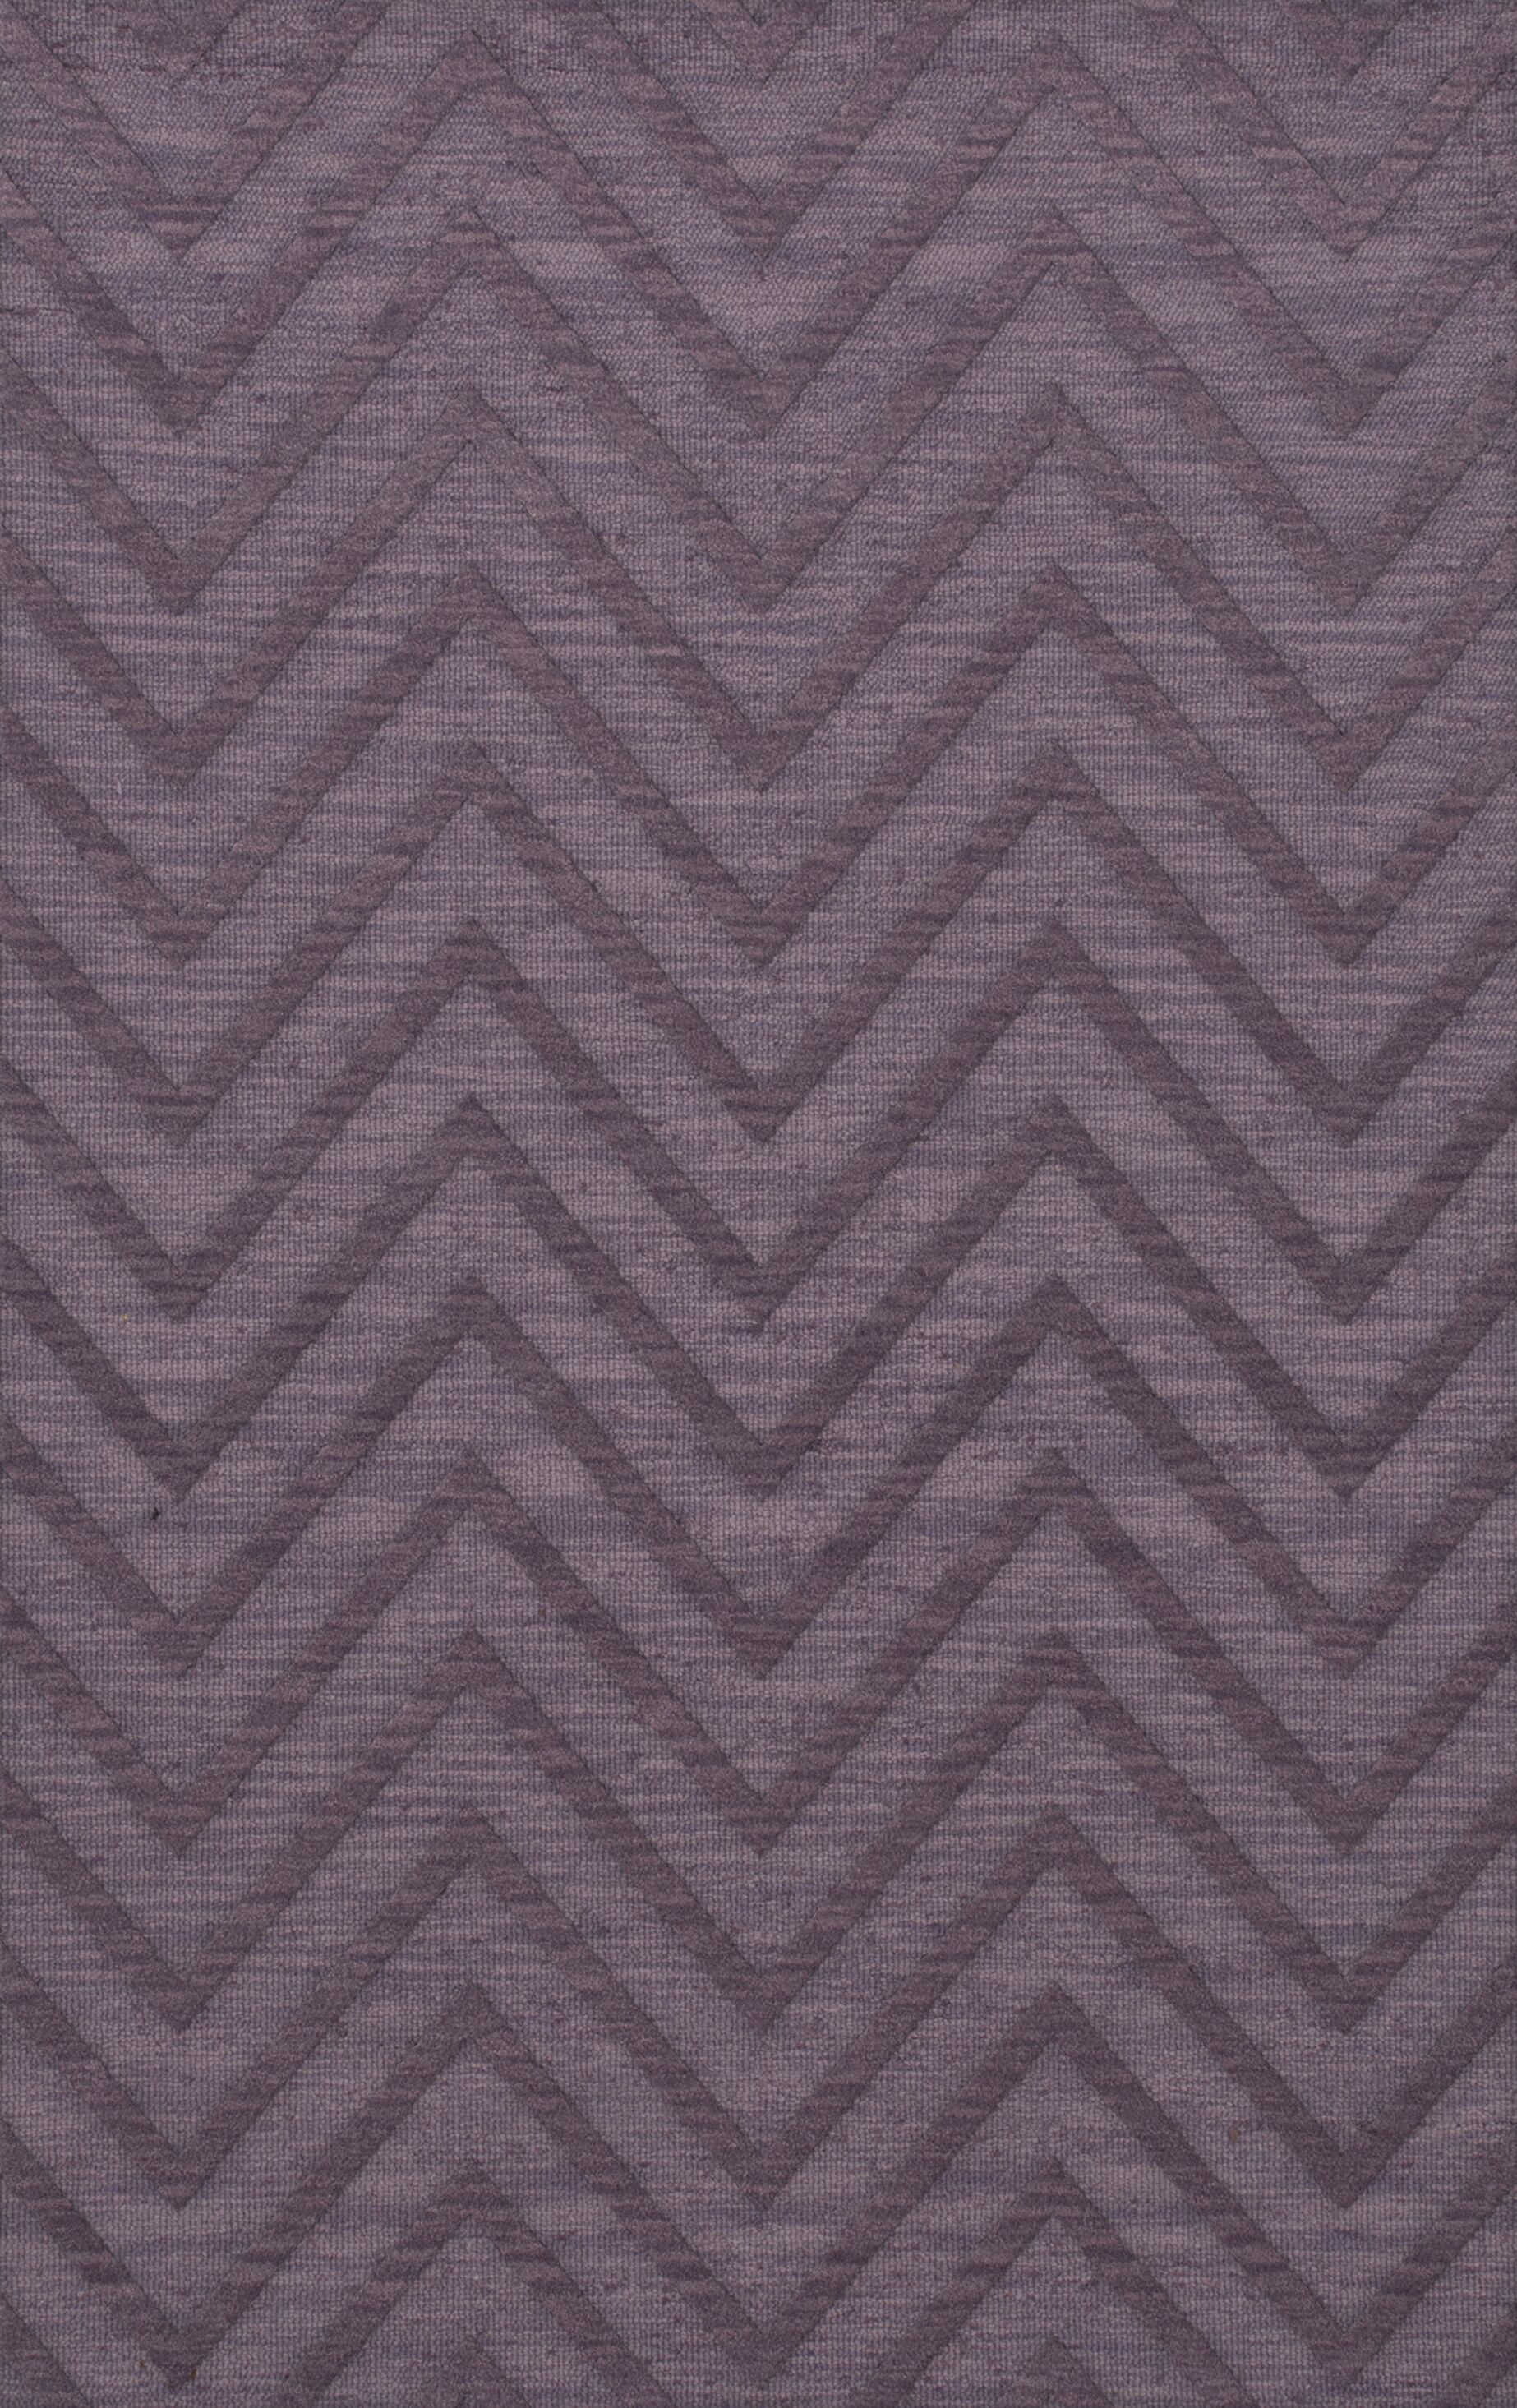 Dover Viola Area Rug Rug Size: Rectangle 8' x 10'